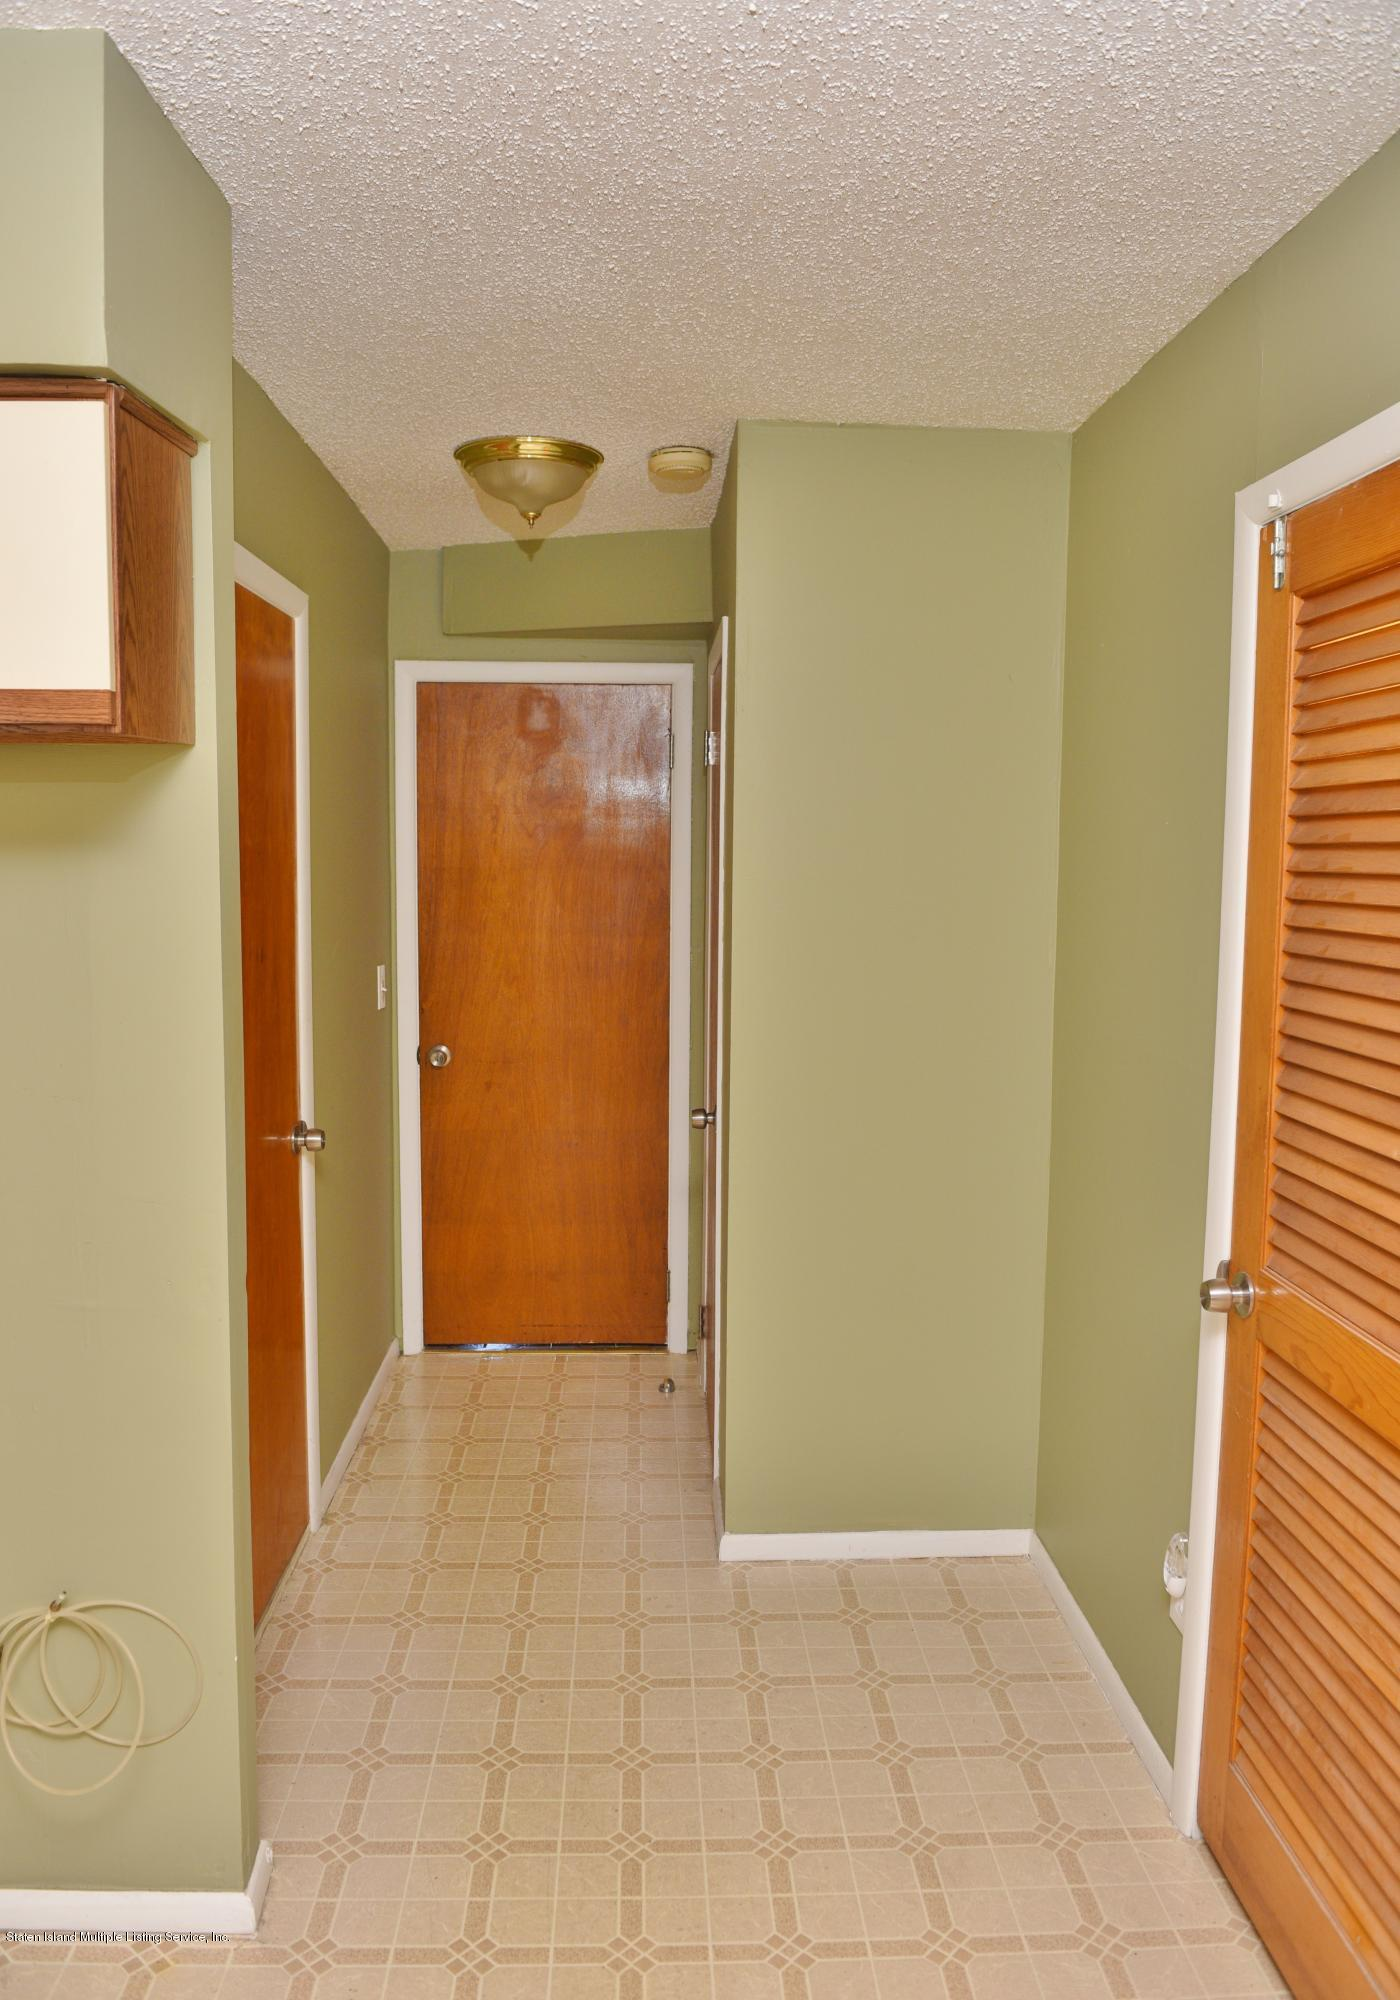 Single Family - Detached 41 Prices Lane  Staten Island, NY 10314, MLS-1129754-27